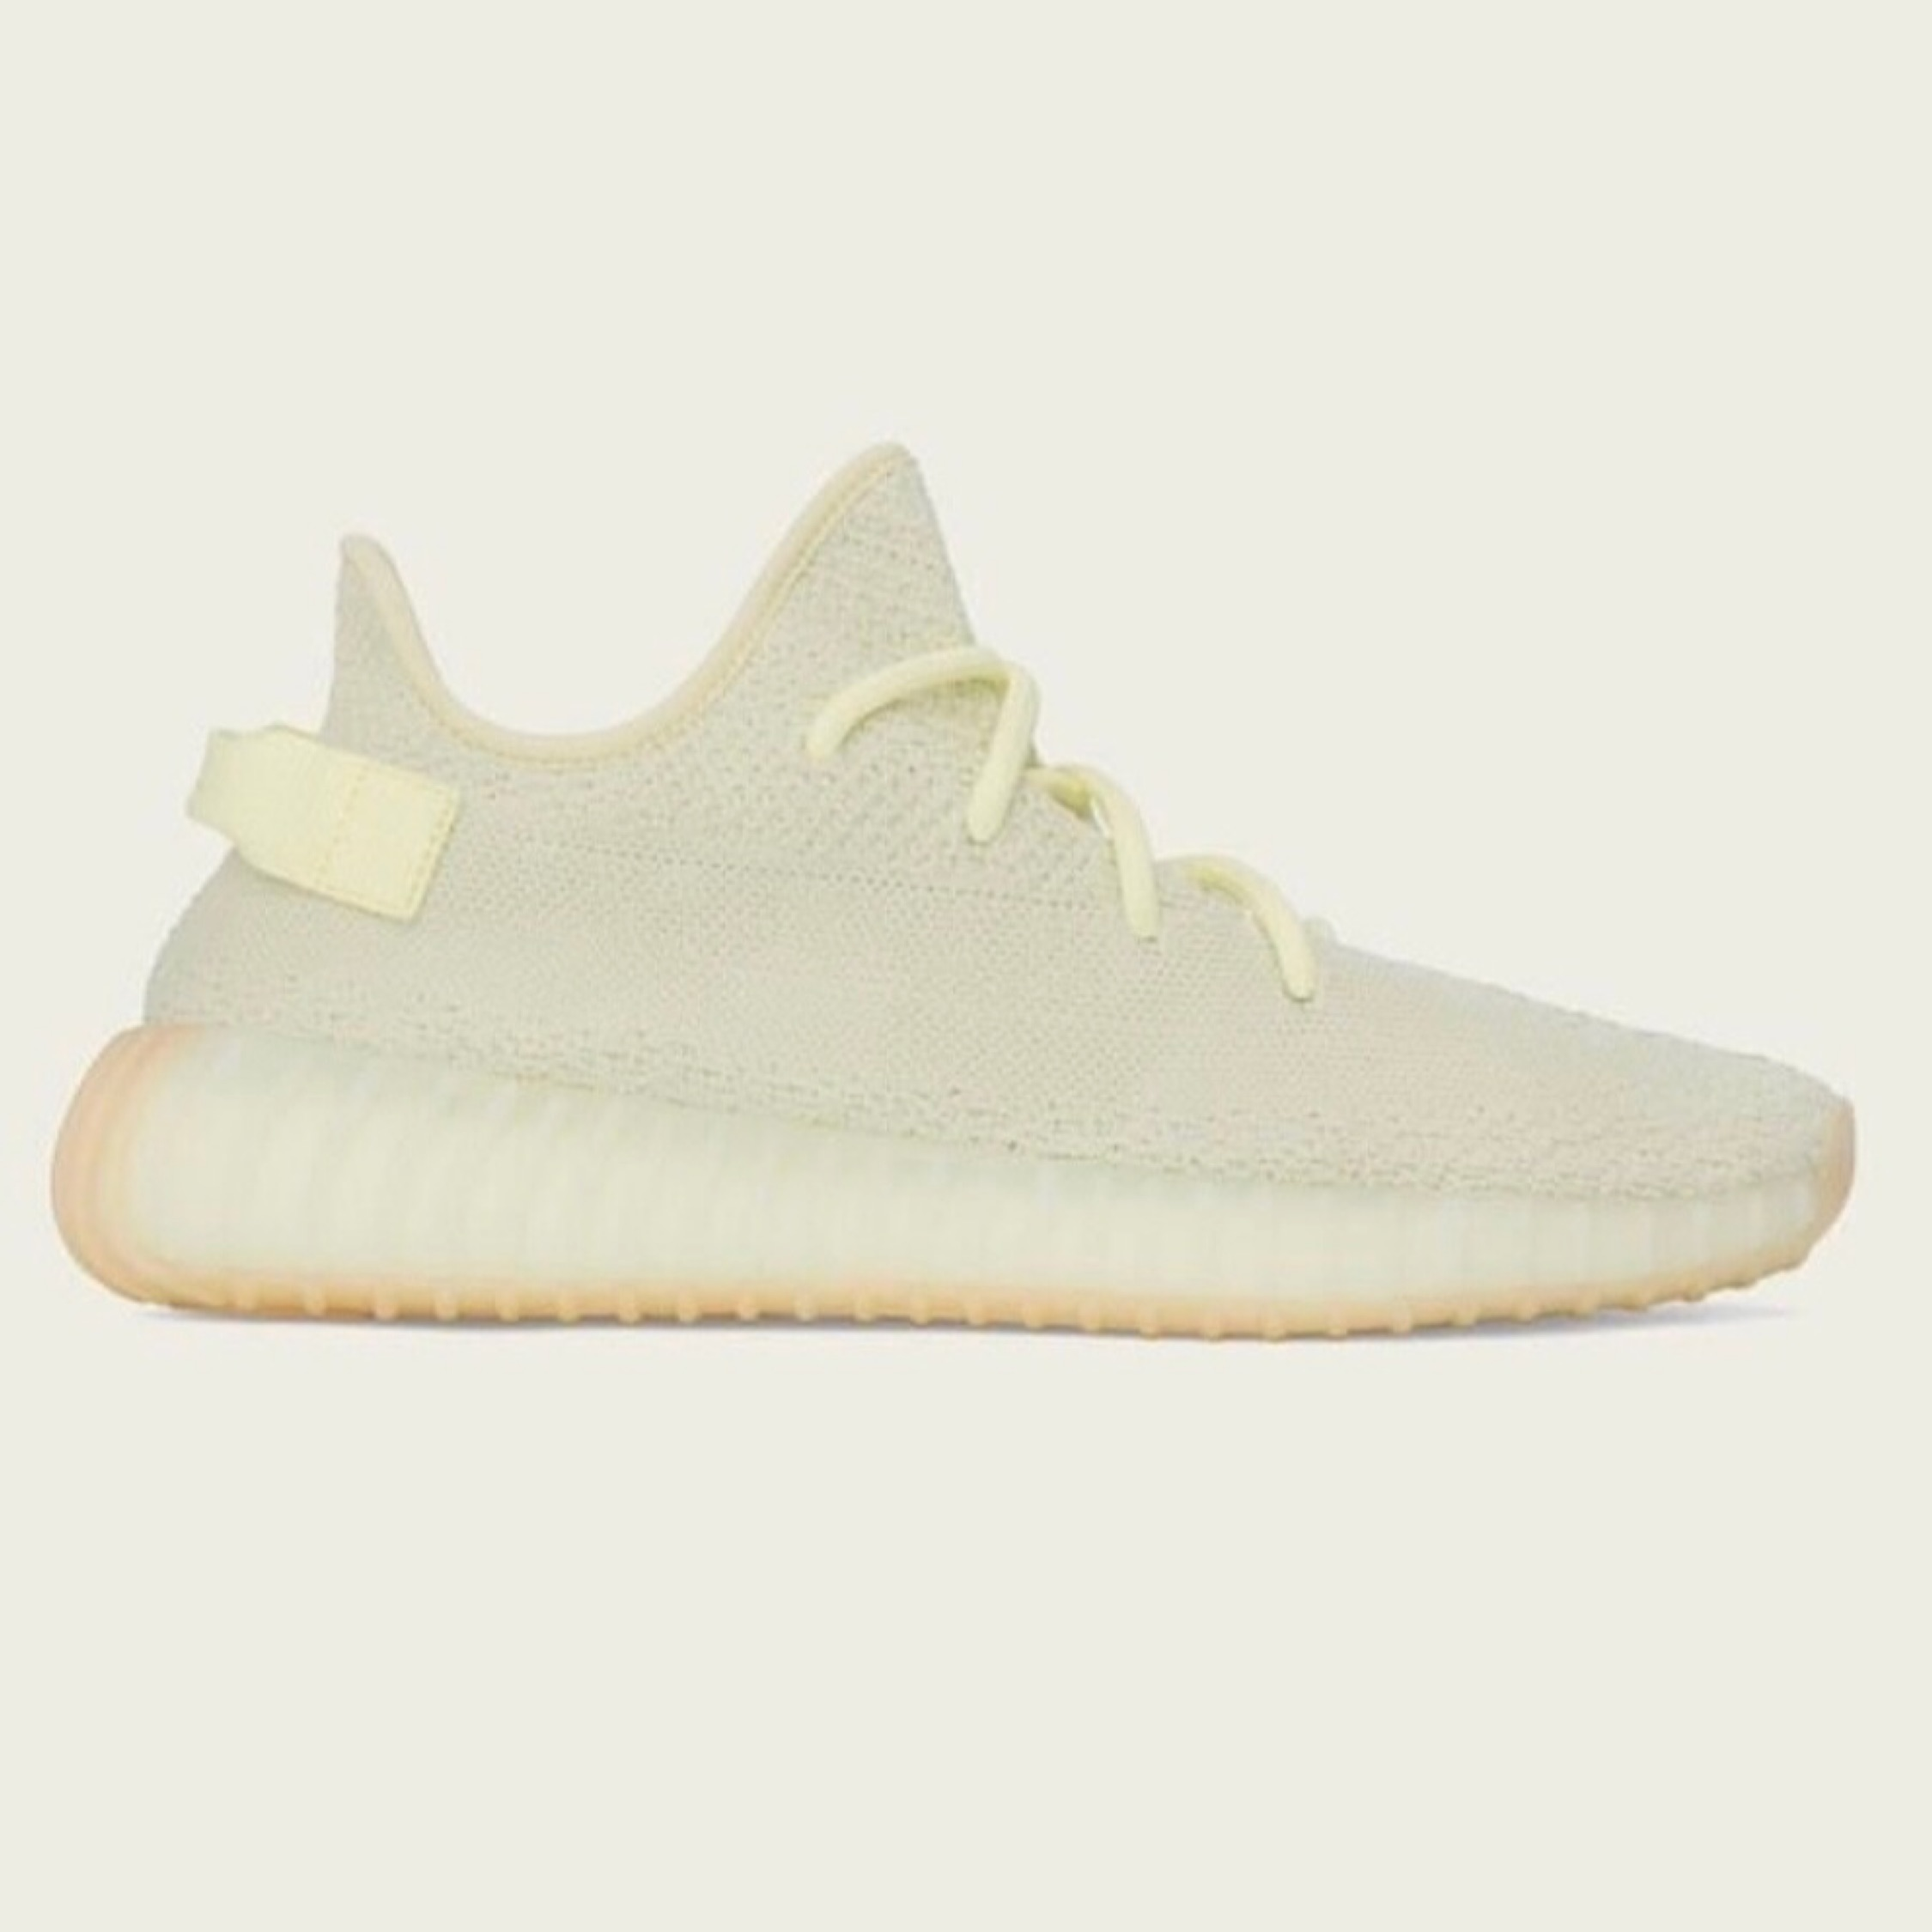 new product ab003 2be8c Adidas X Kanye West Boost 350 V2 Butter